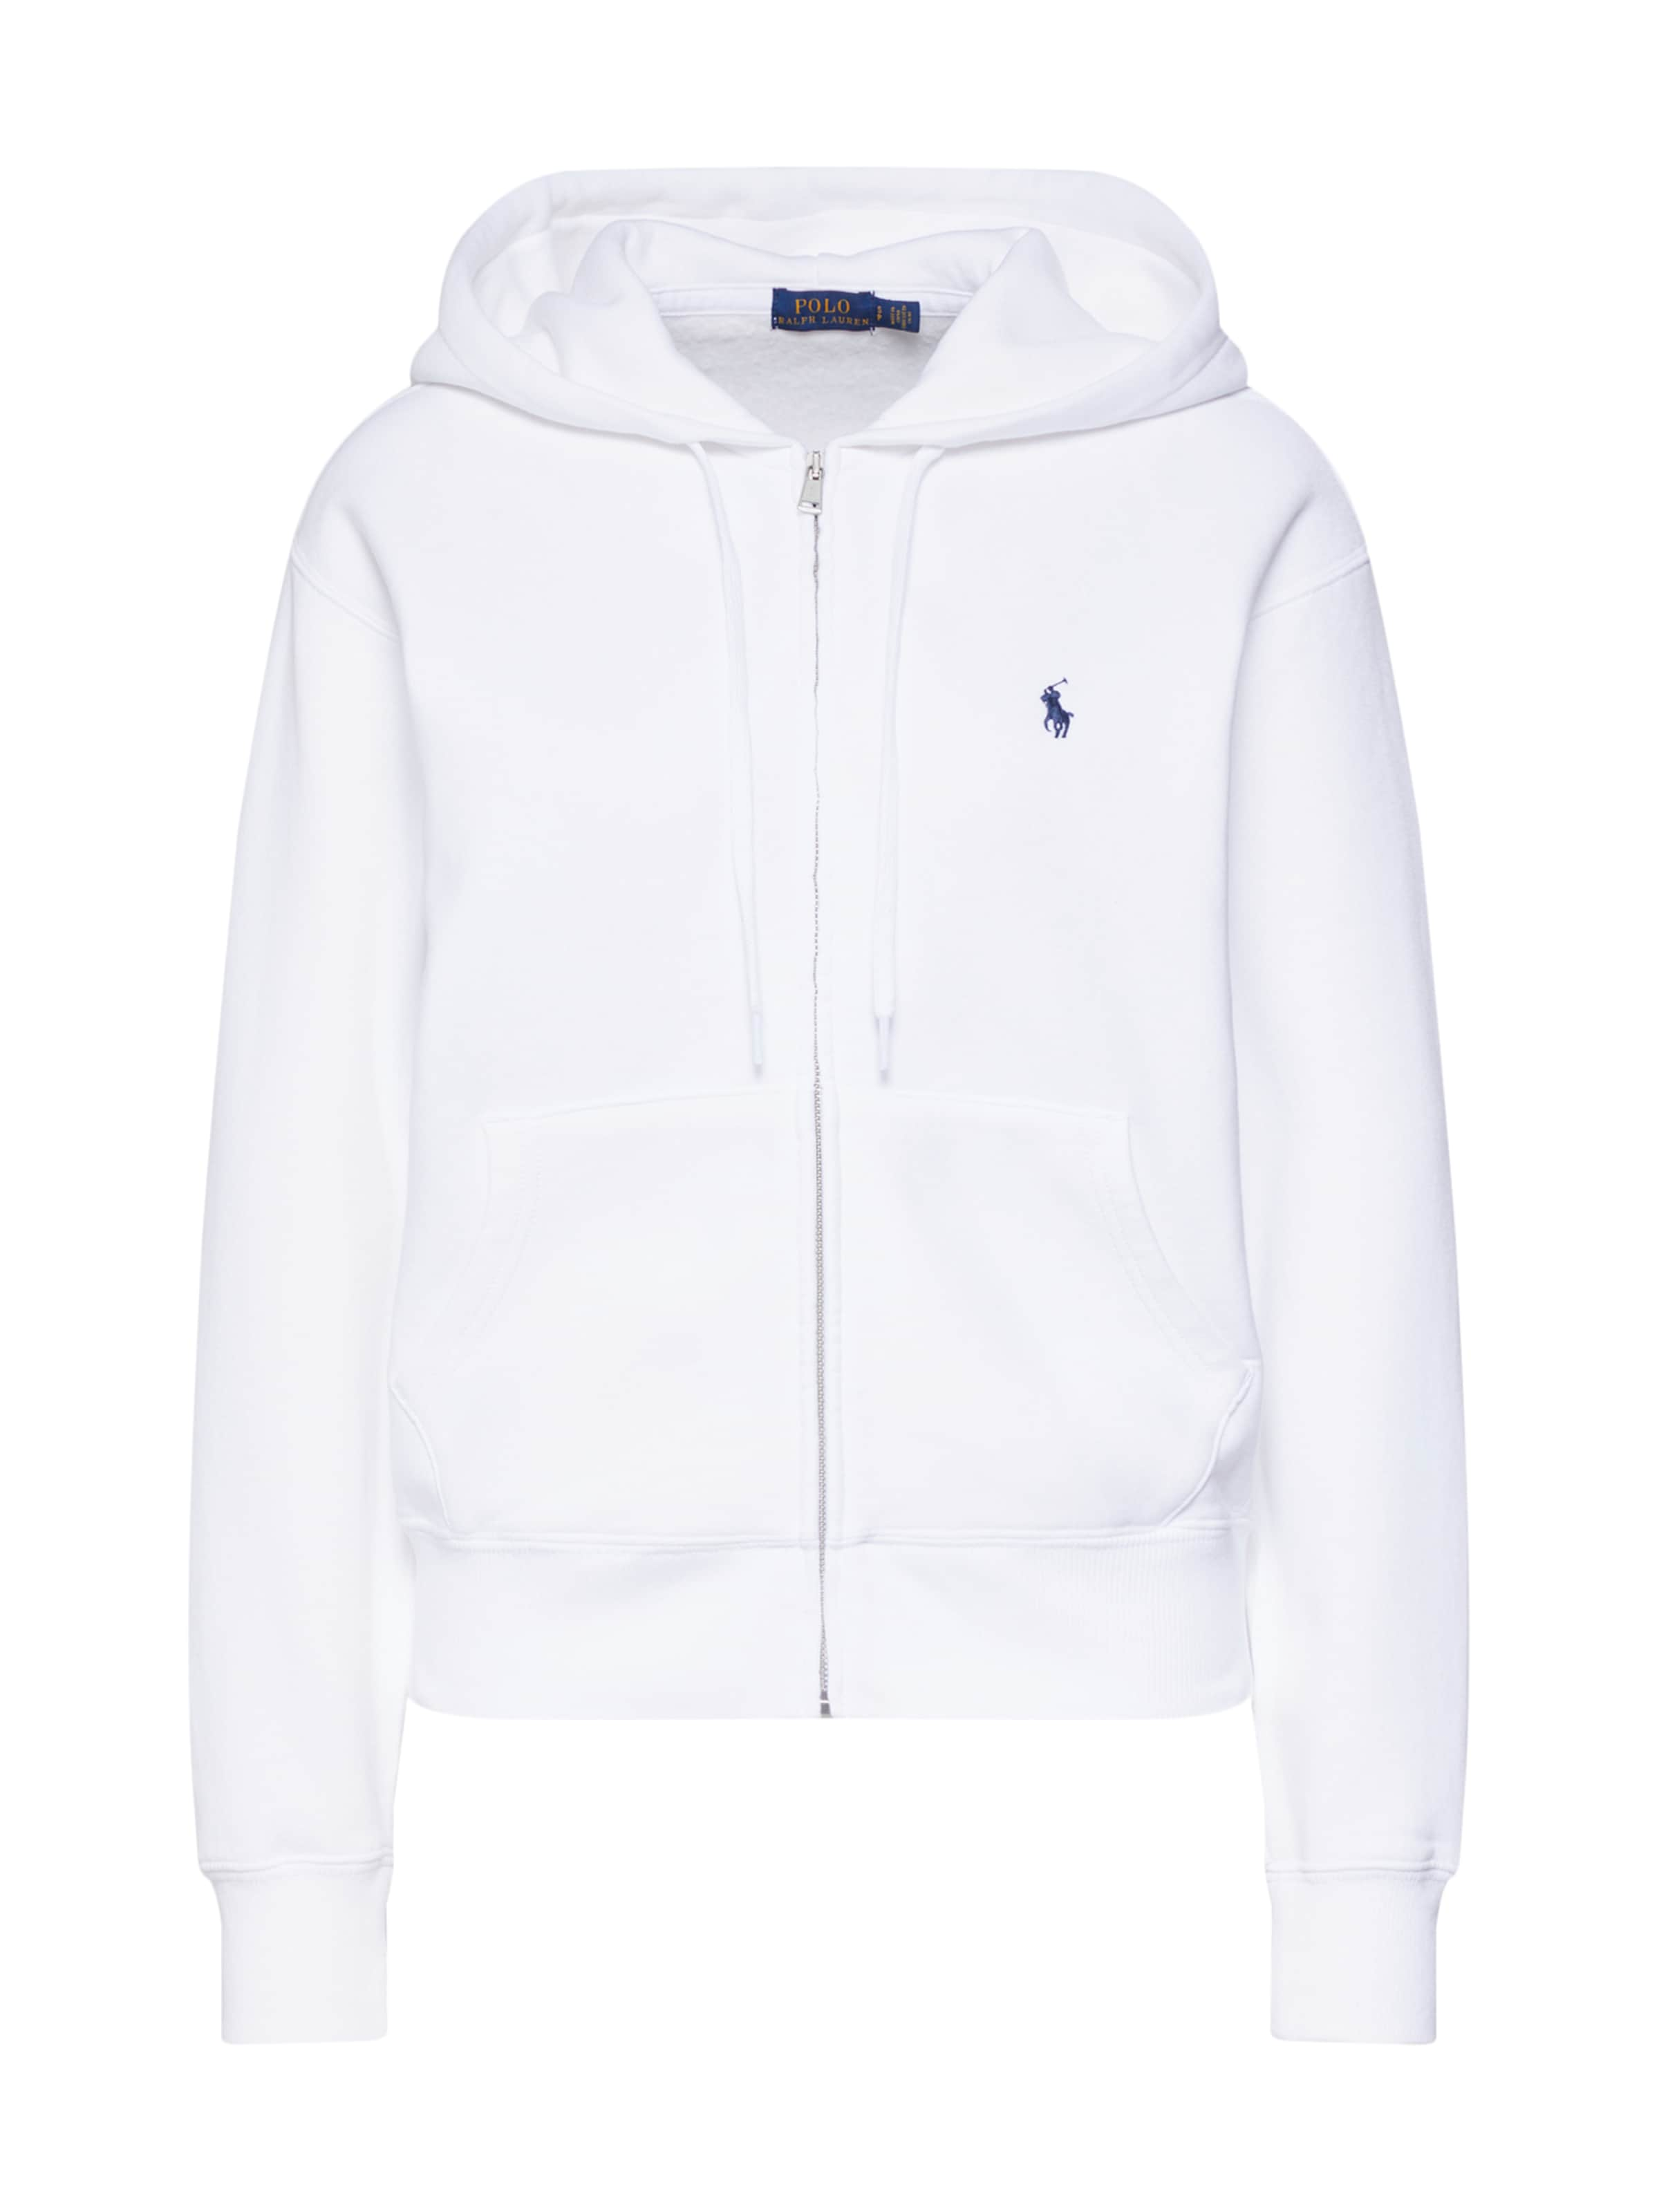 Polo Lauren Veste Bleu De En Survêtement Ralph MarineRouge f7YvbgmIy6